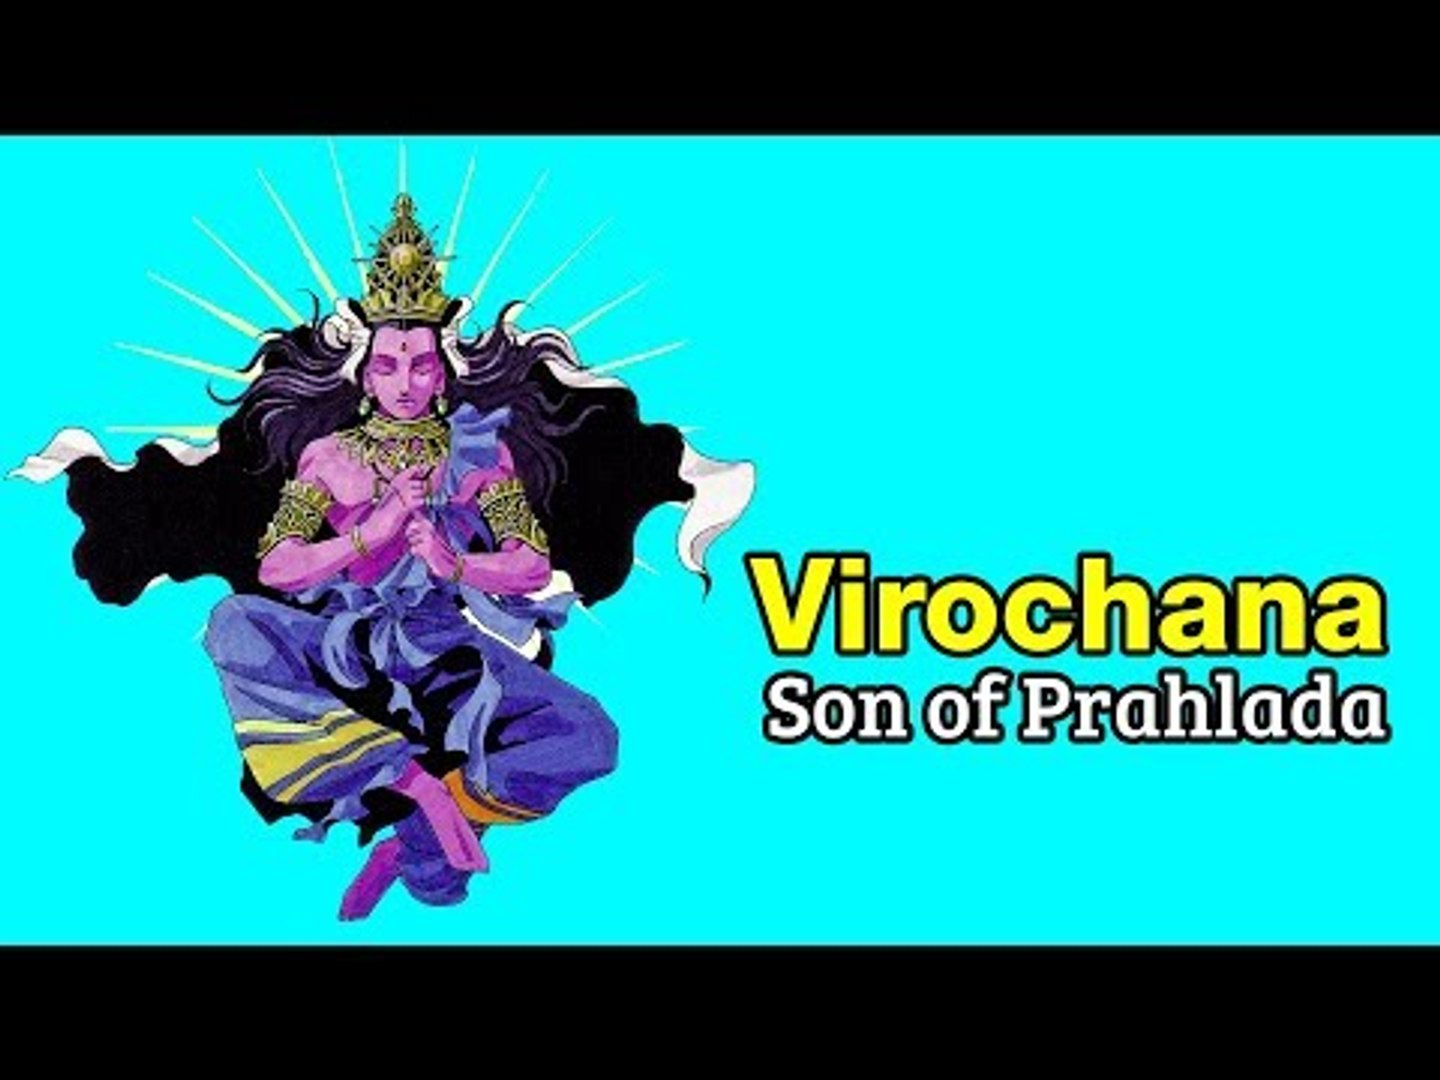 who is the son of virochana